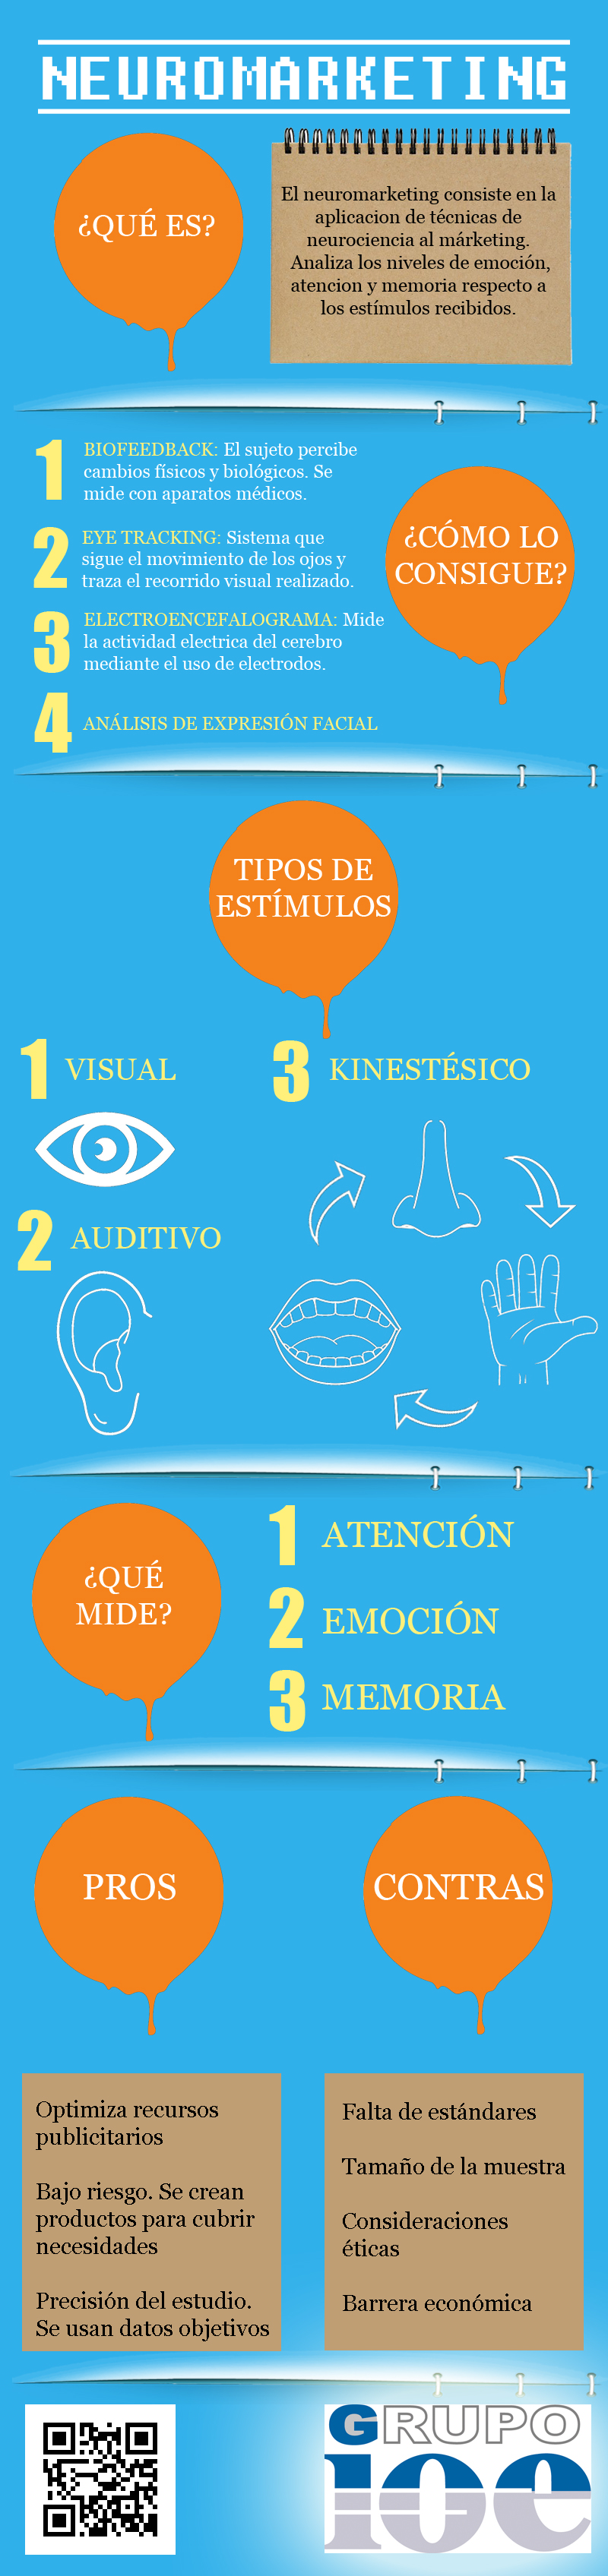 neuromarketing infografia